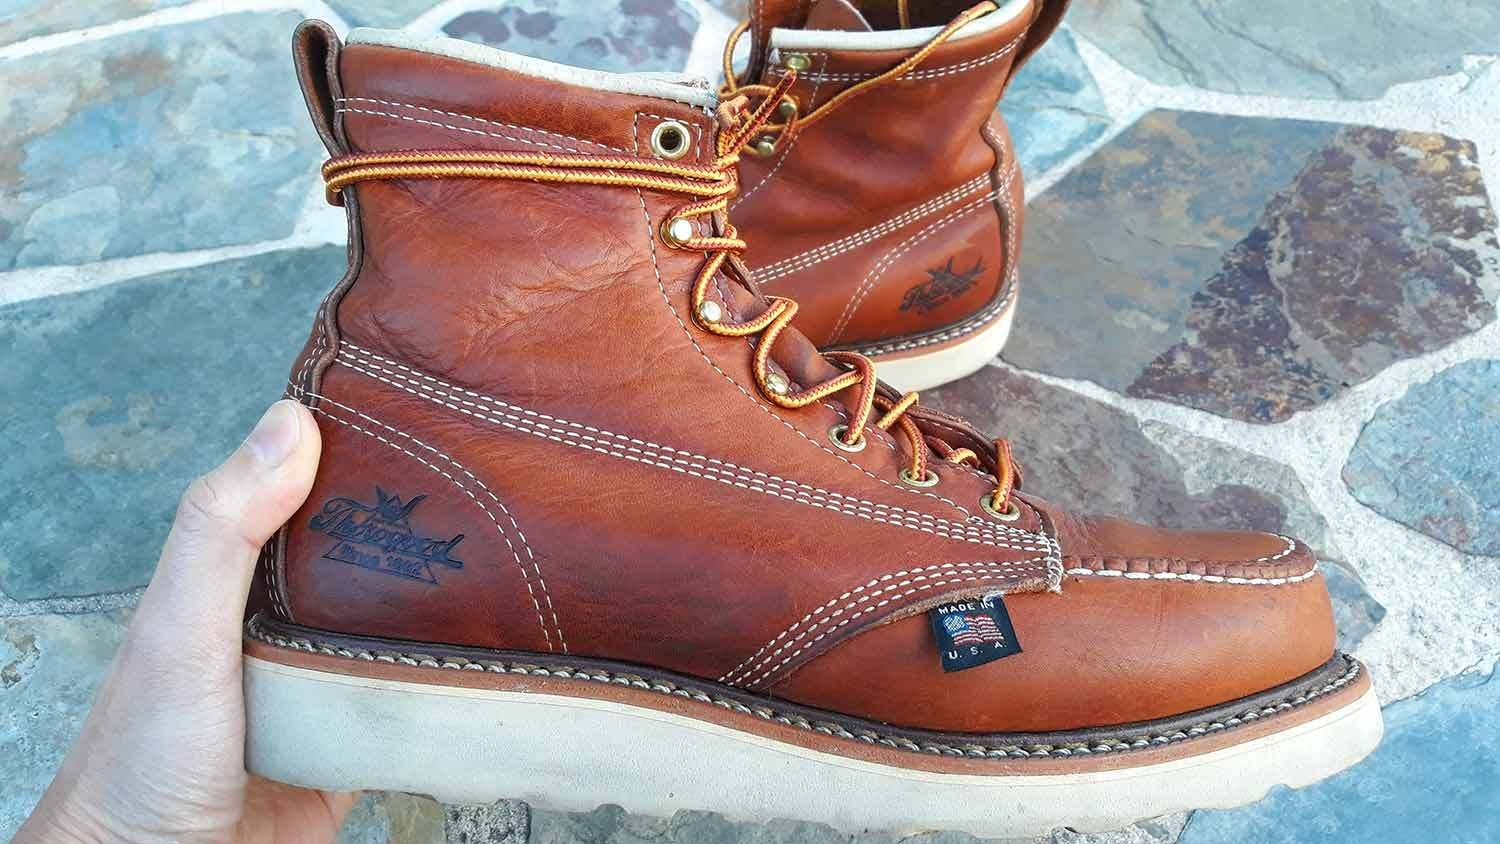 Thorogood Boots Review: 4 Year Update | Moc toe boots men